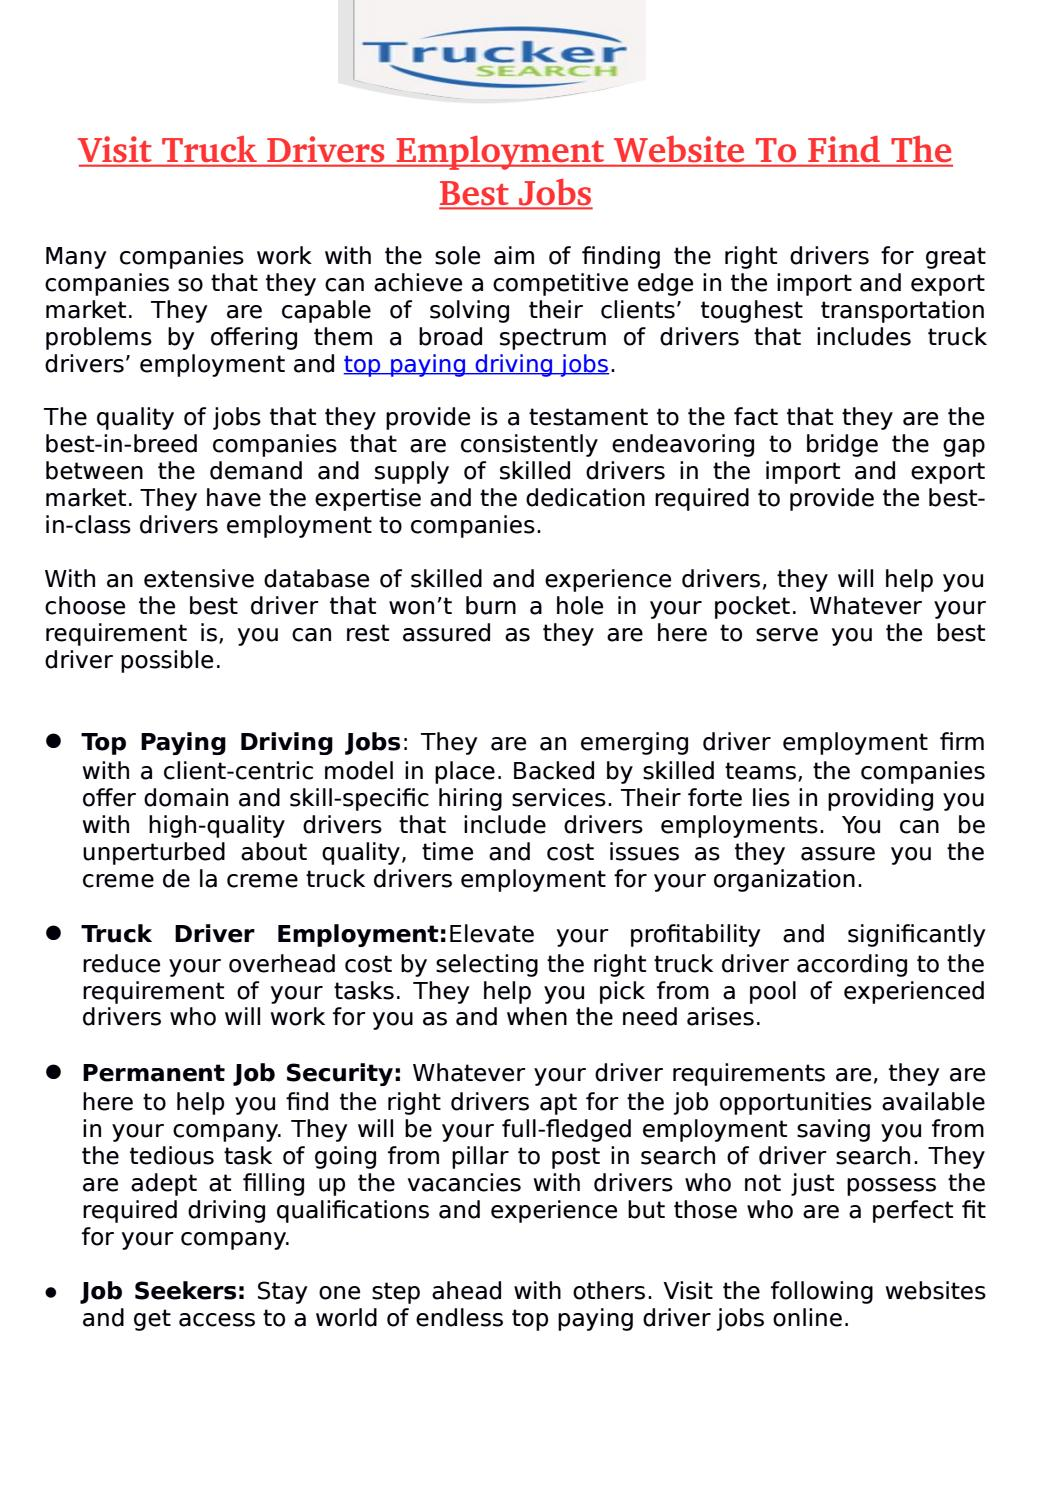 Visit truck drivers employment website to find the best jobs